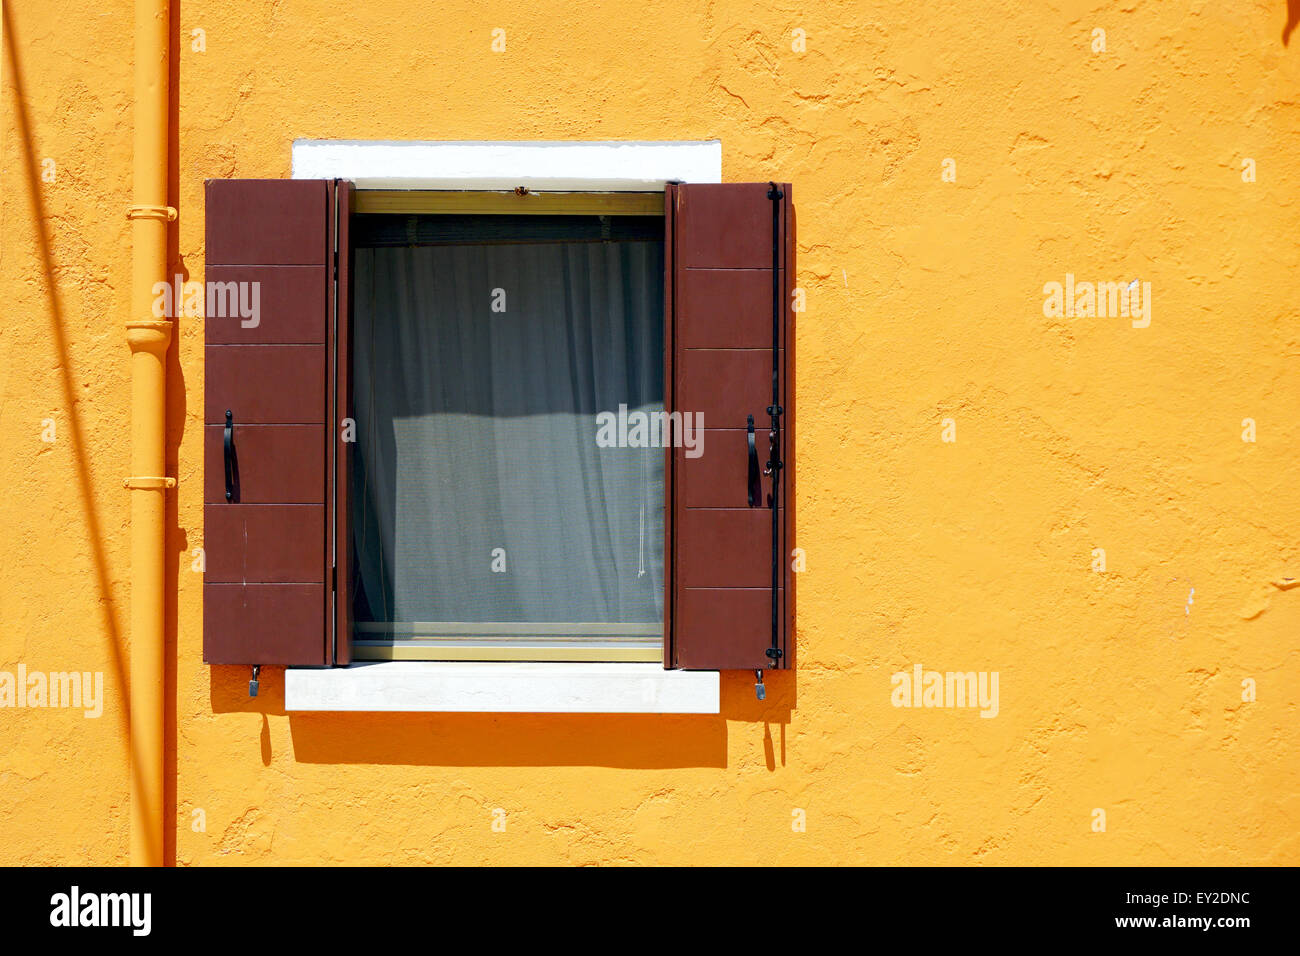 Orange Color Building Stock Photos & Orange Color Building Stock ...